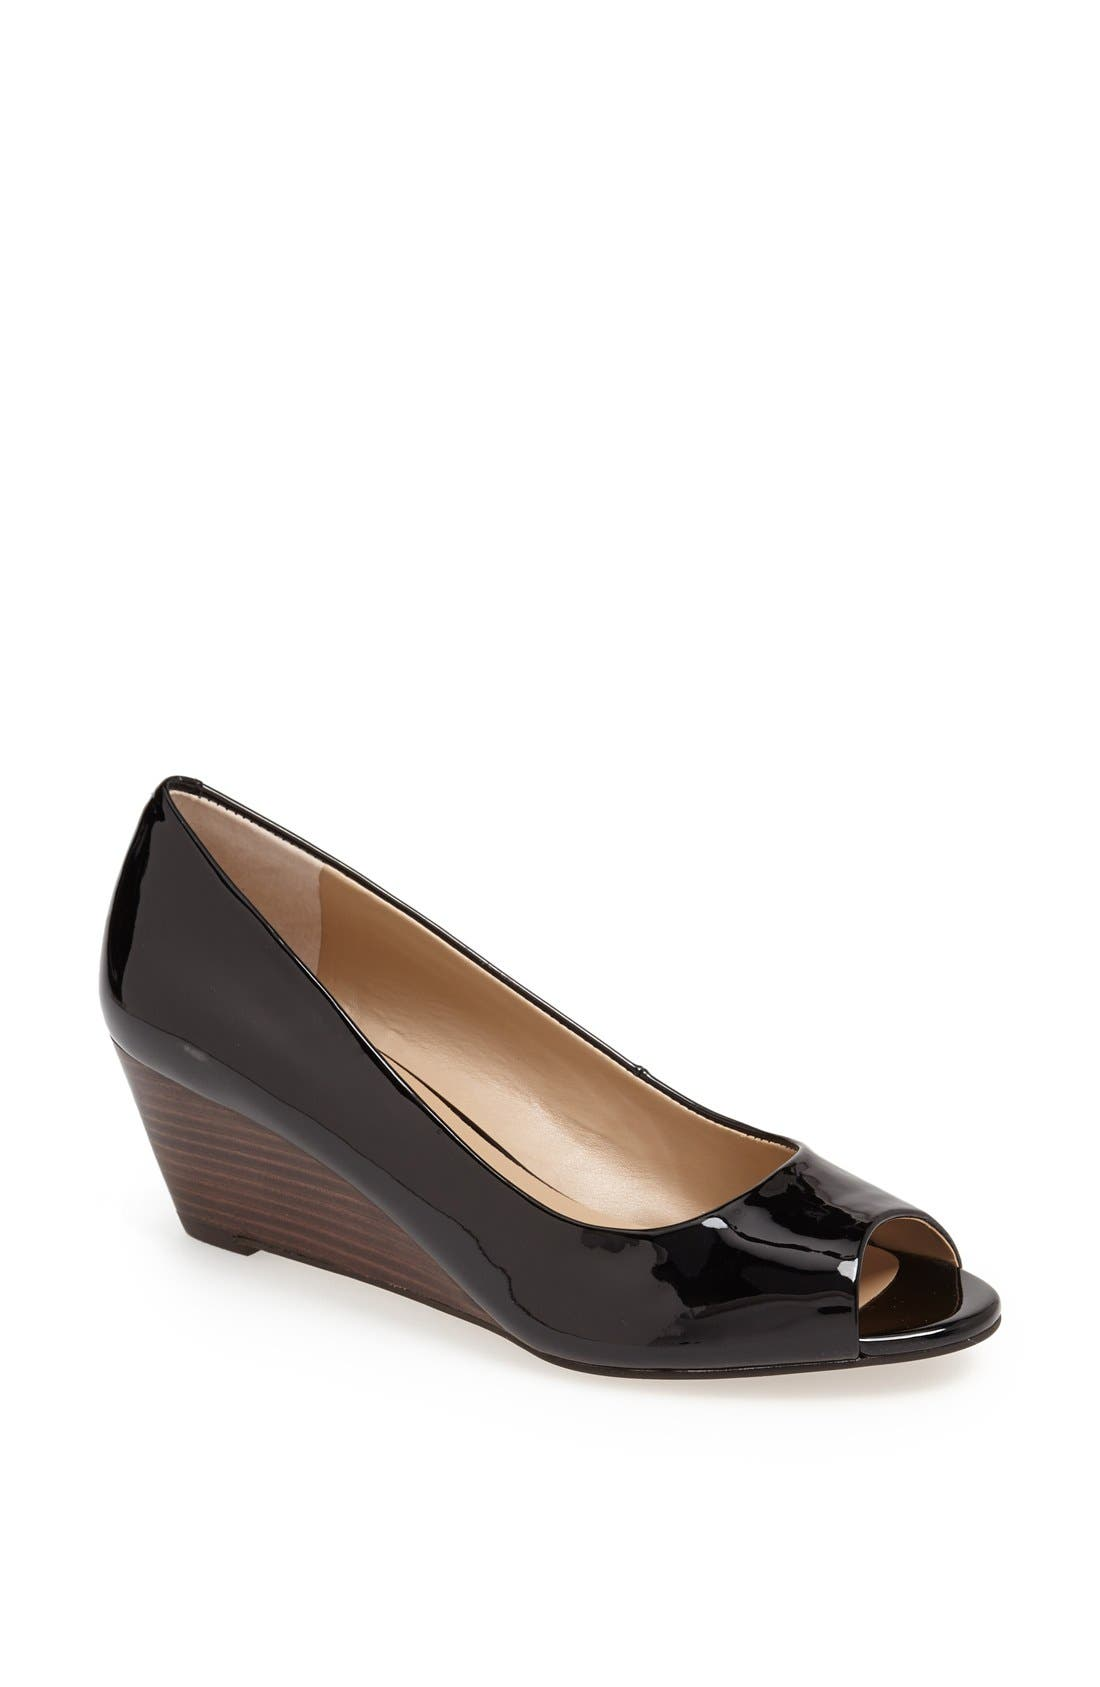 Main Image - Sole Society 'Laurie' Wedge (Women)